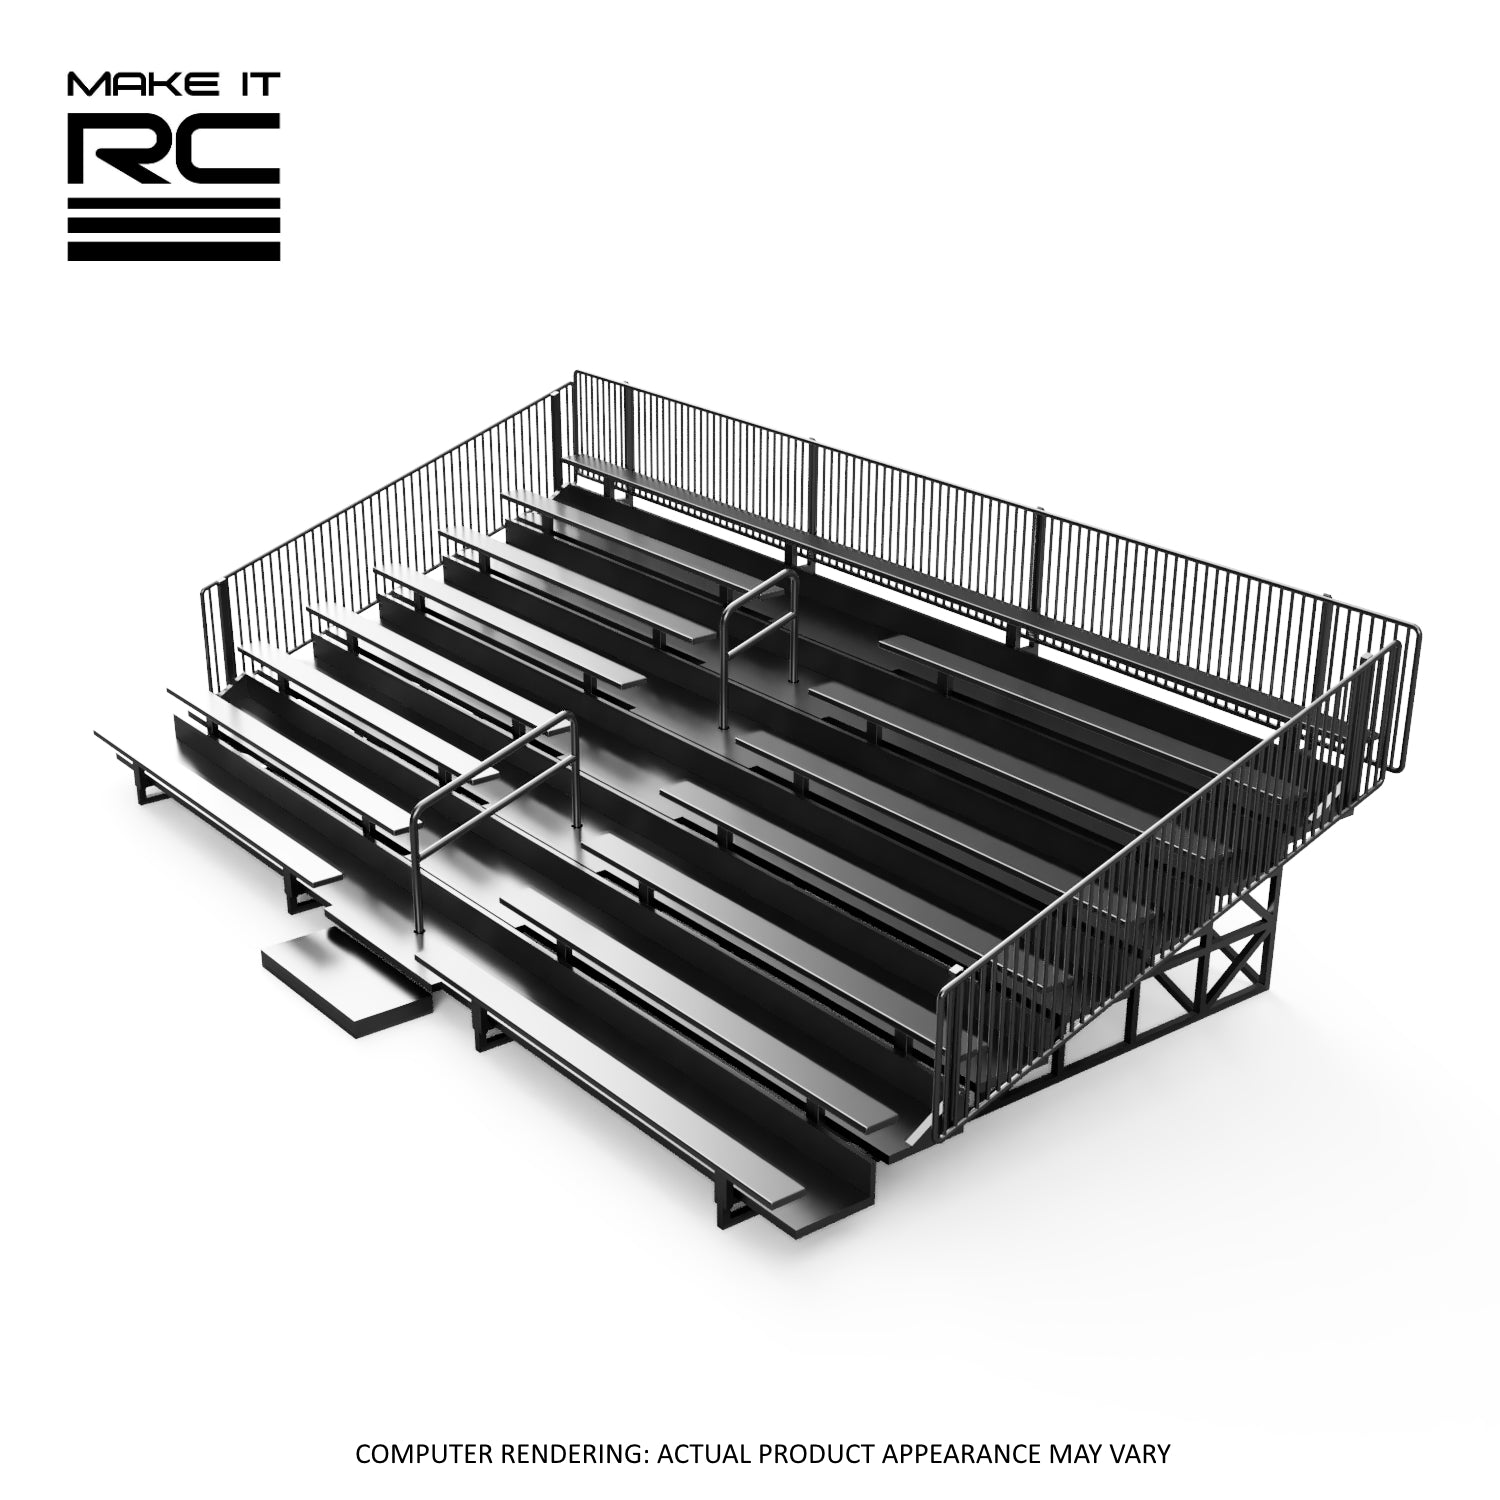 Make It RC 1/24-1/25 Scale Race Track Bleachers (STL Download)